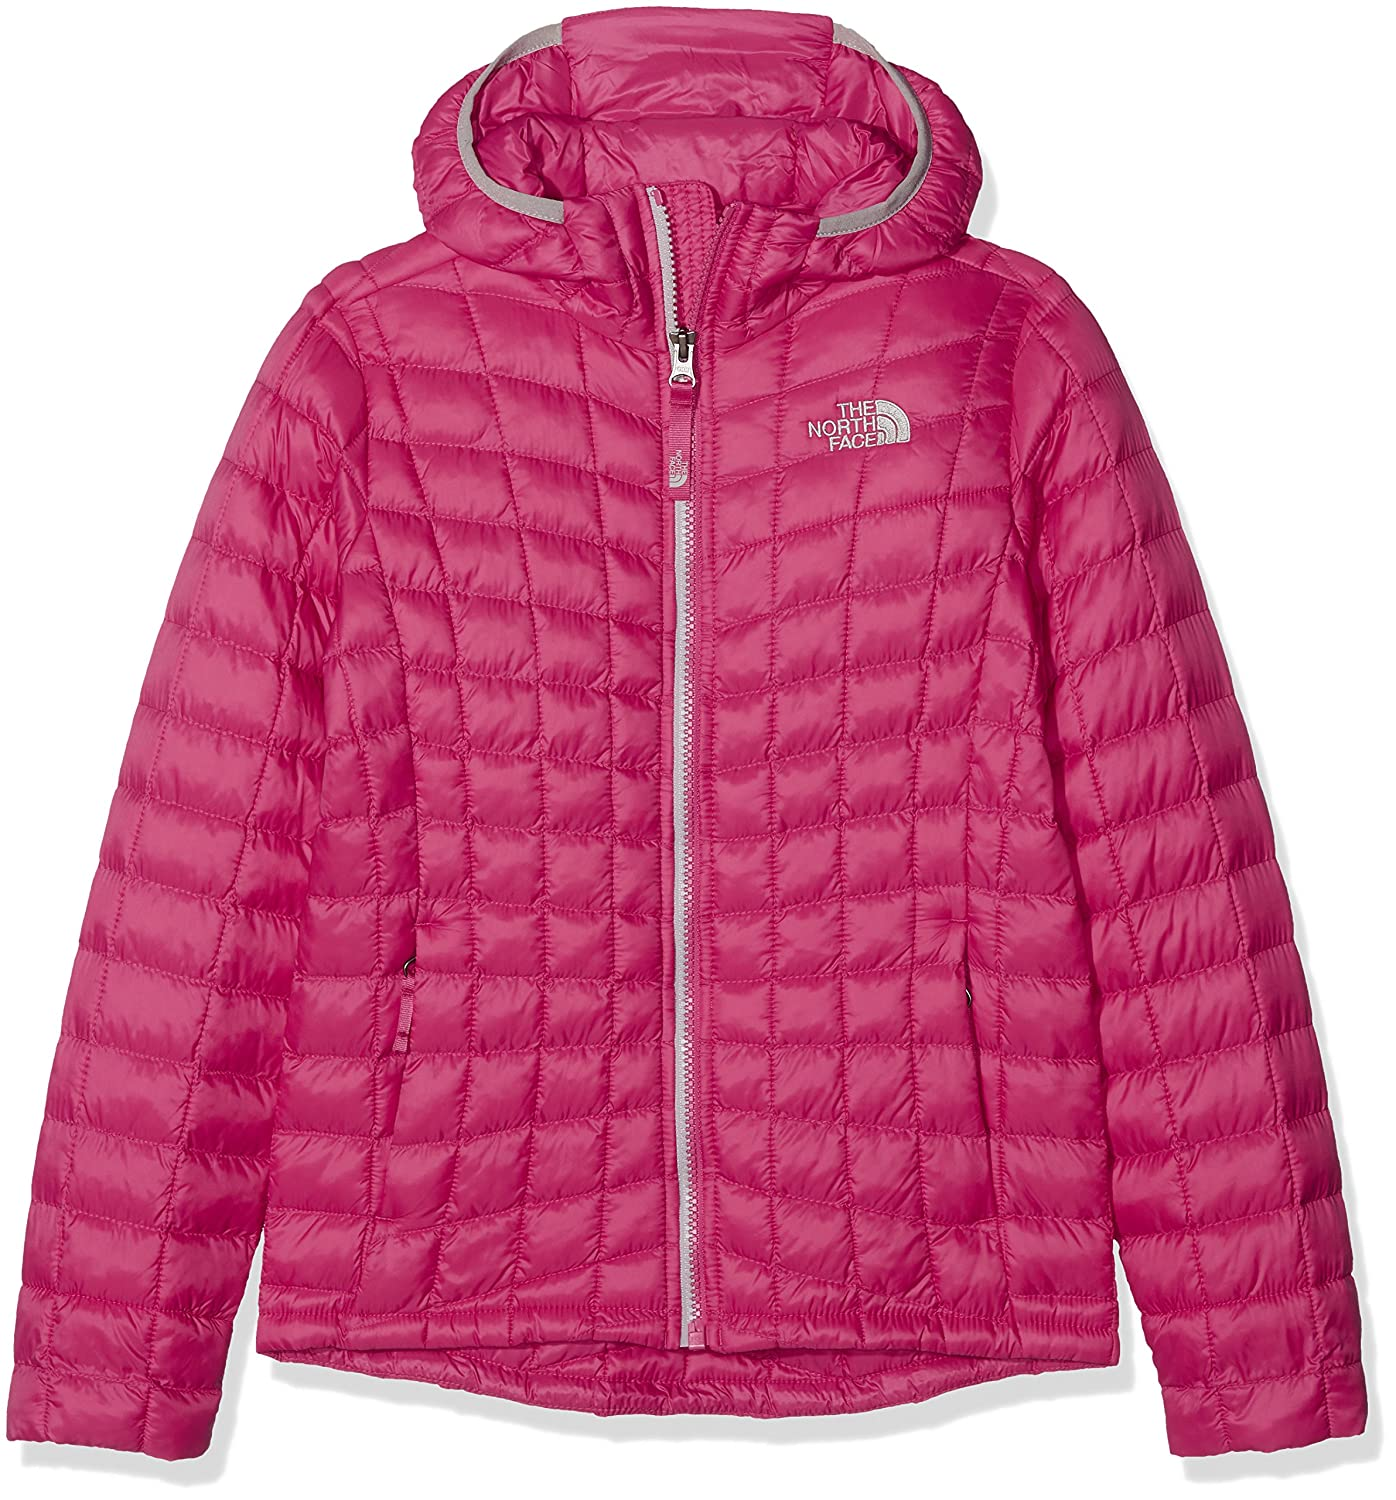 The North Face Girl's Thermoball Hoodie NF0A3CW8